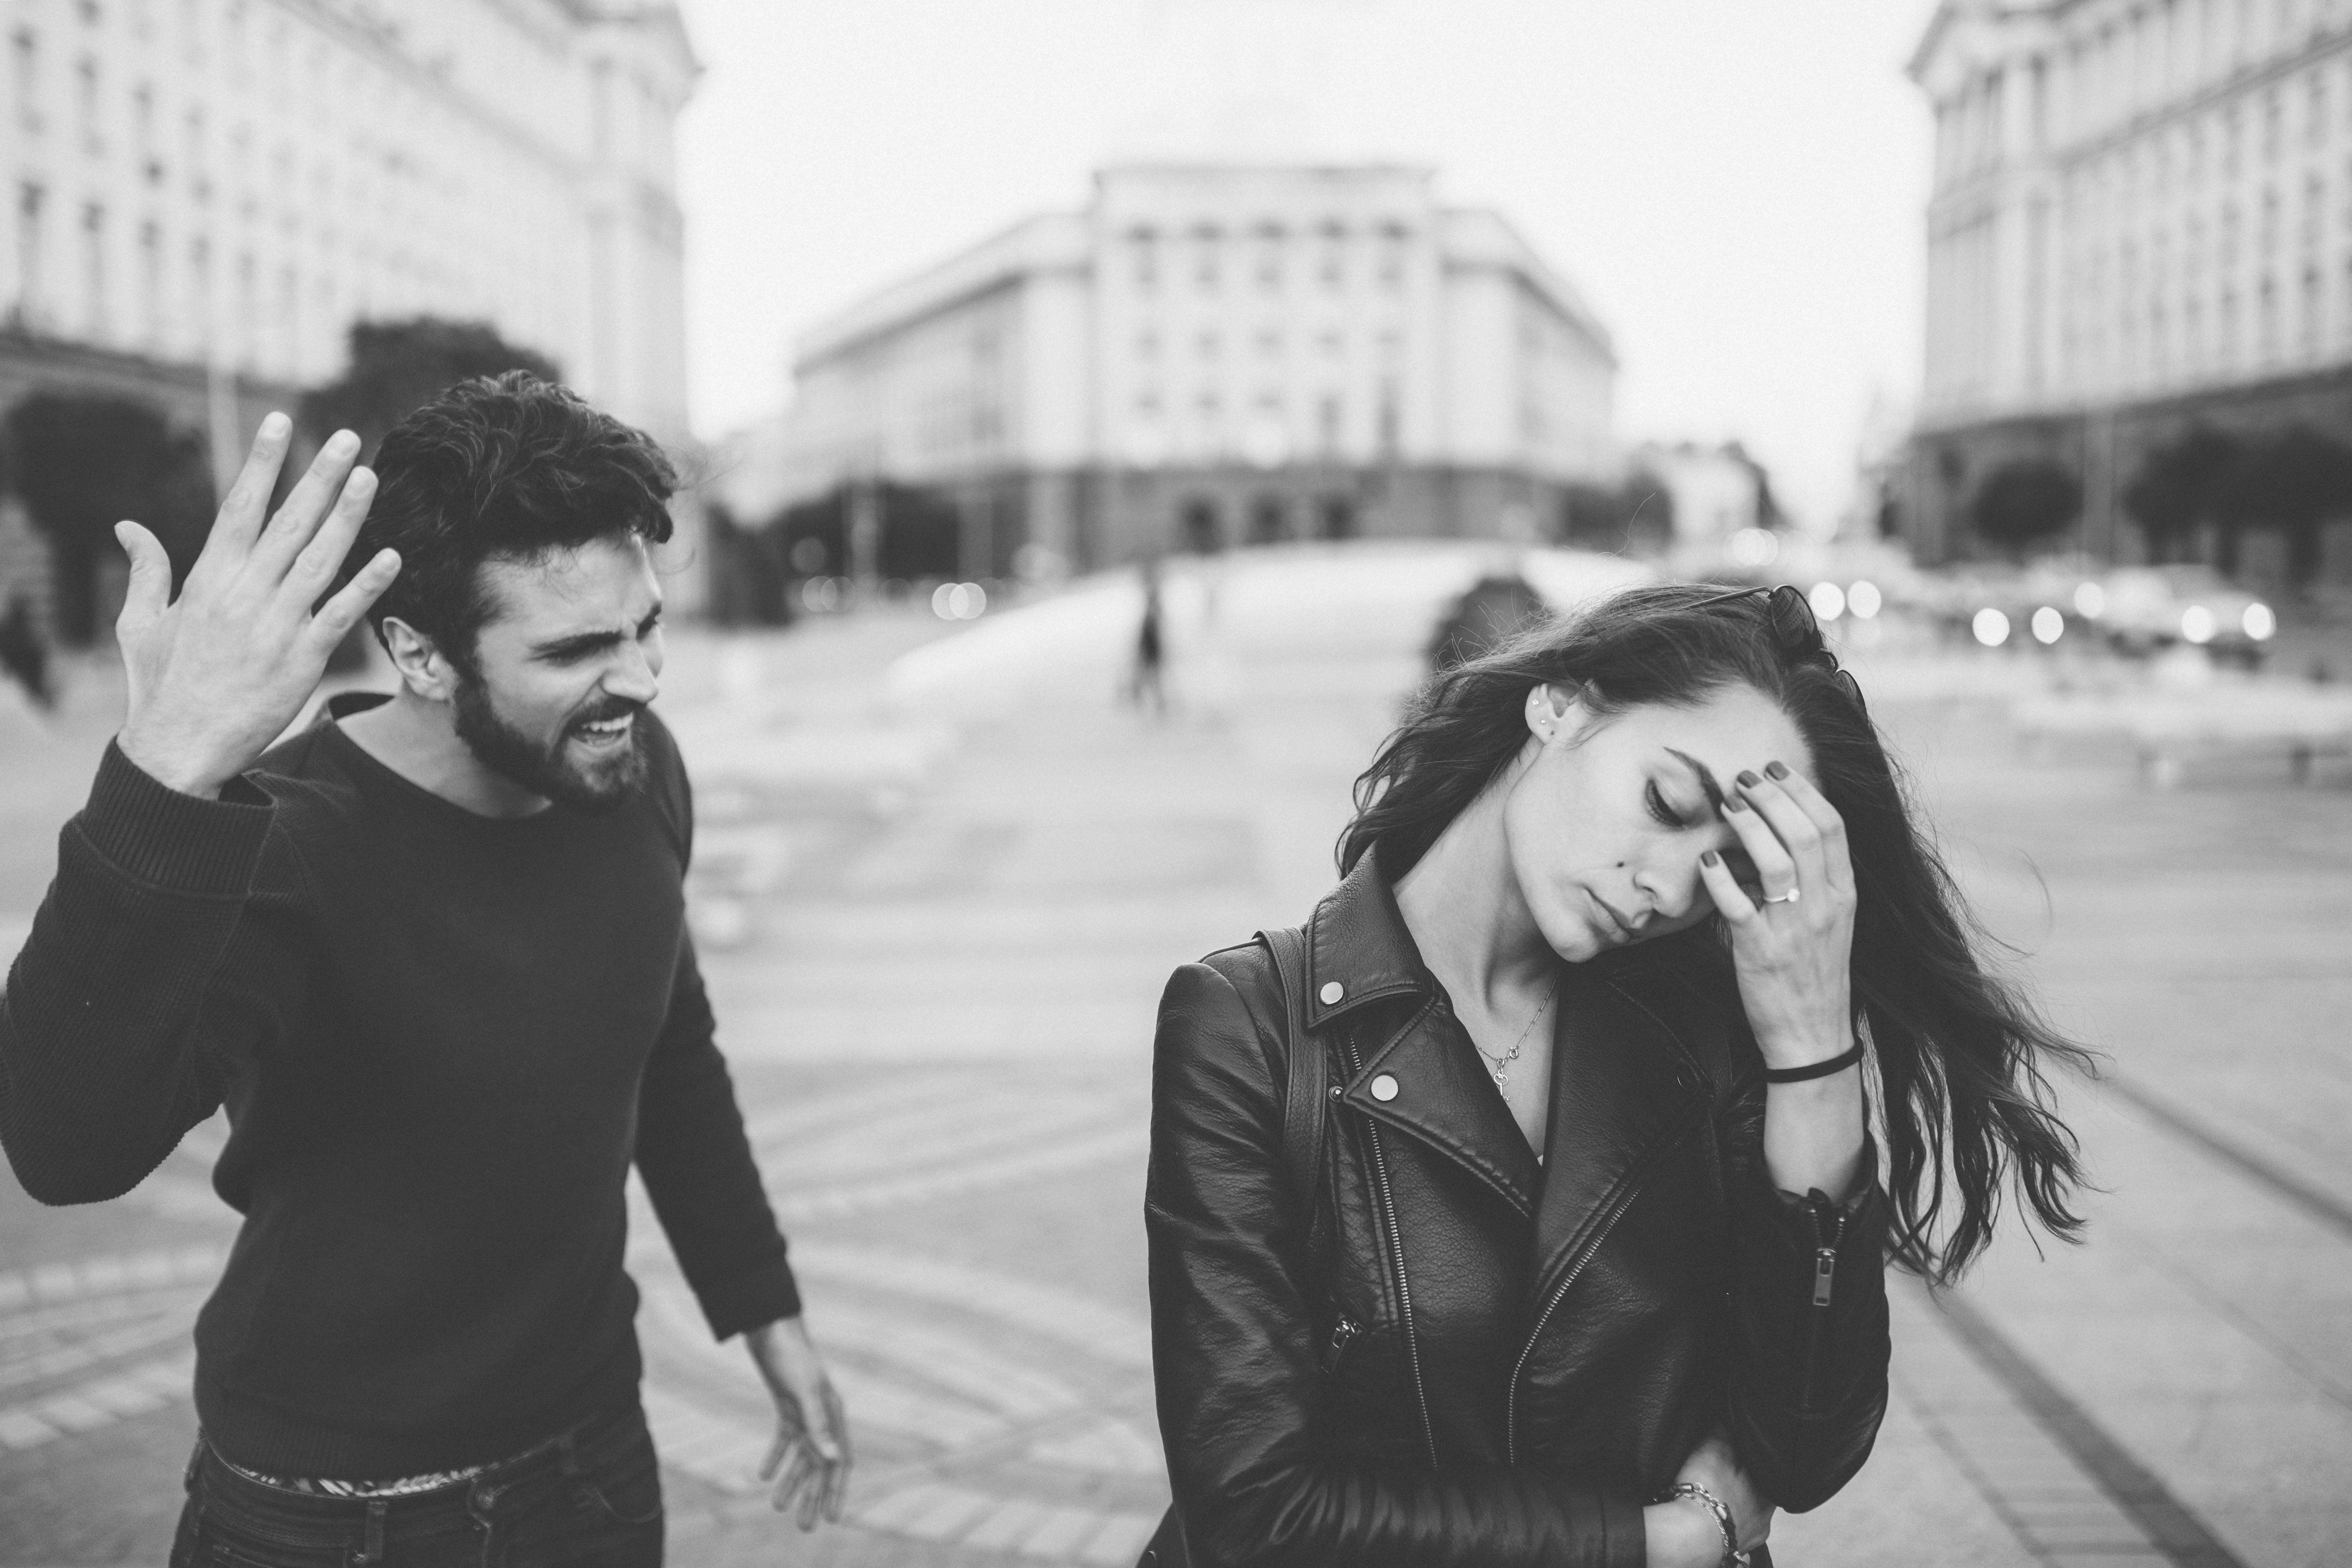 """Emotional abuse, which is used to<a href=""""https://sapac.umich.edu/article/59"""" target=""""_blank"""">gain power and control</a"""